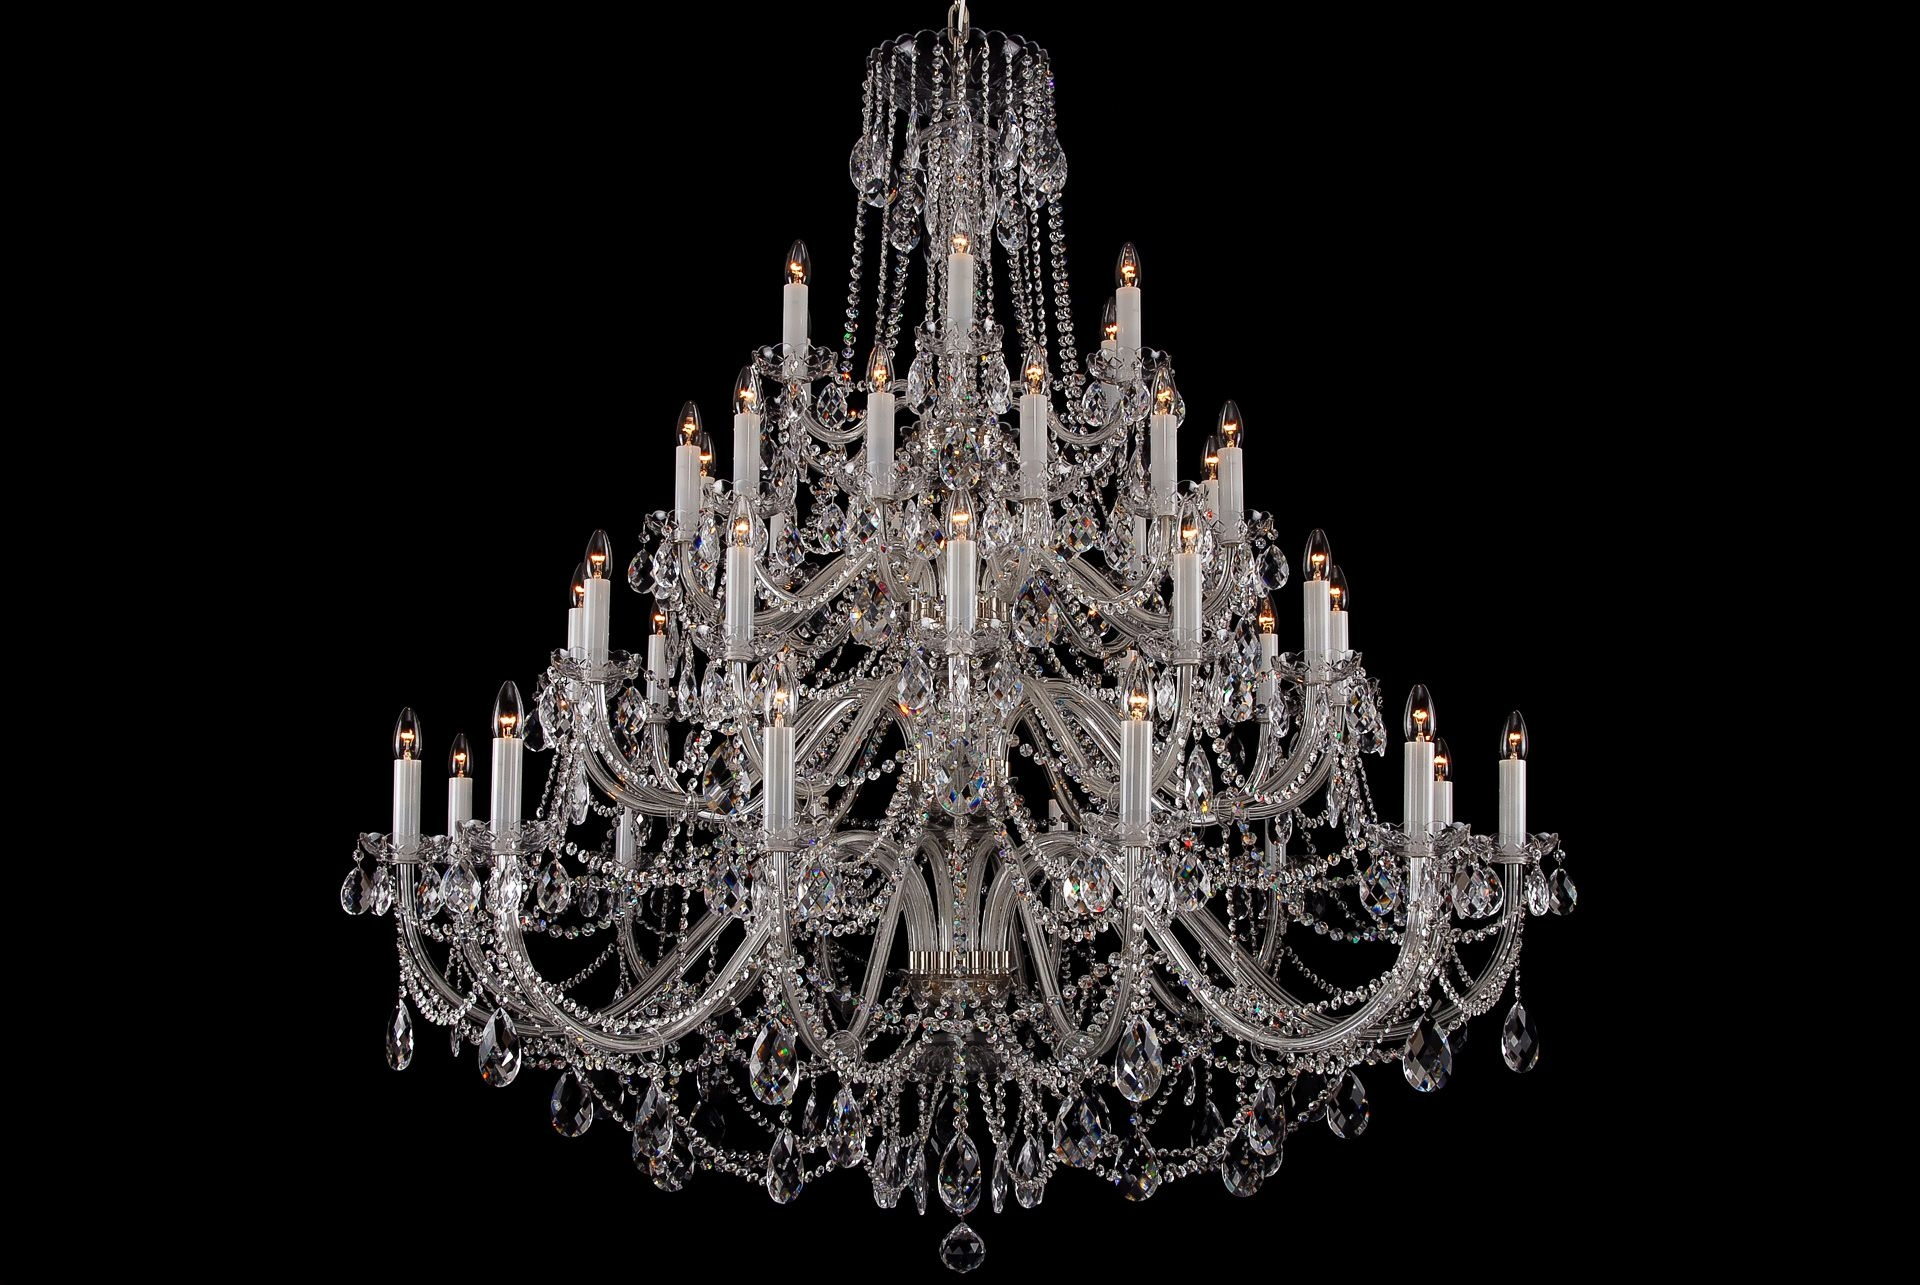 Popular Photo of Huge Crystal Chandeliers